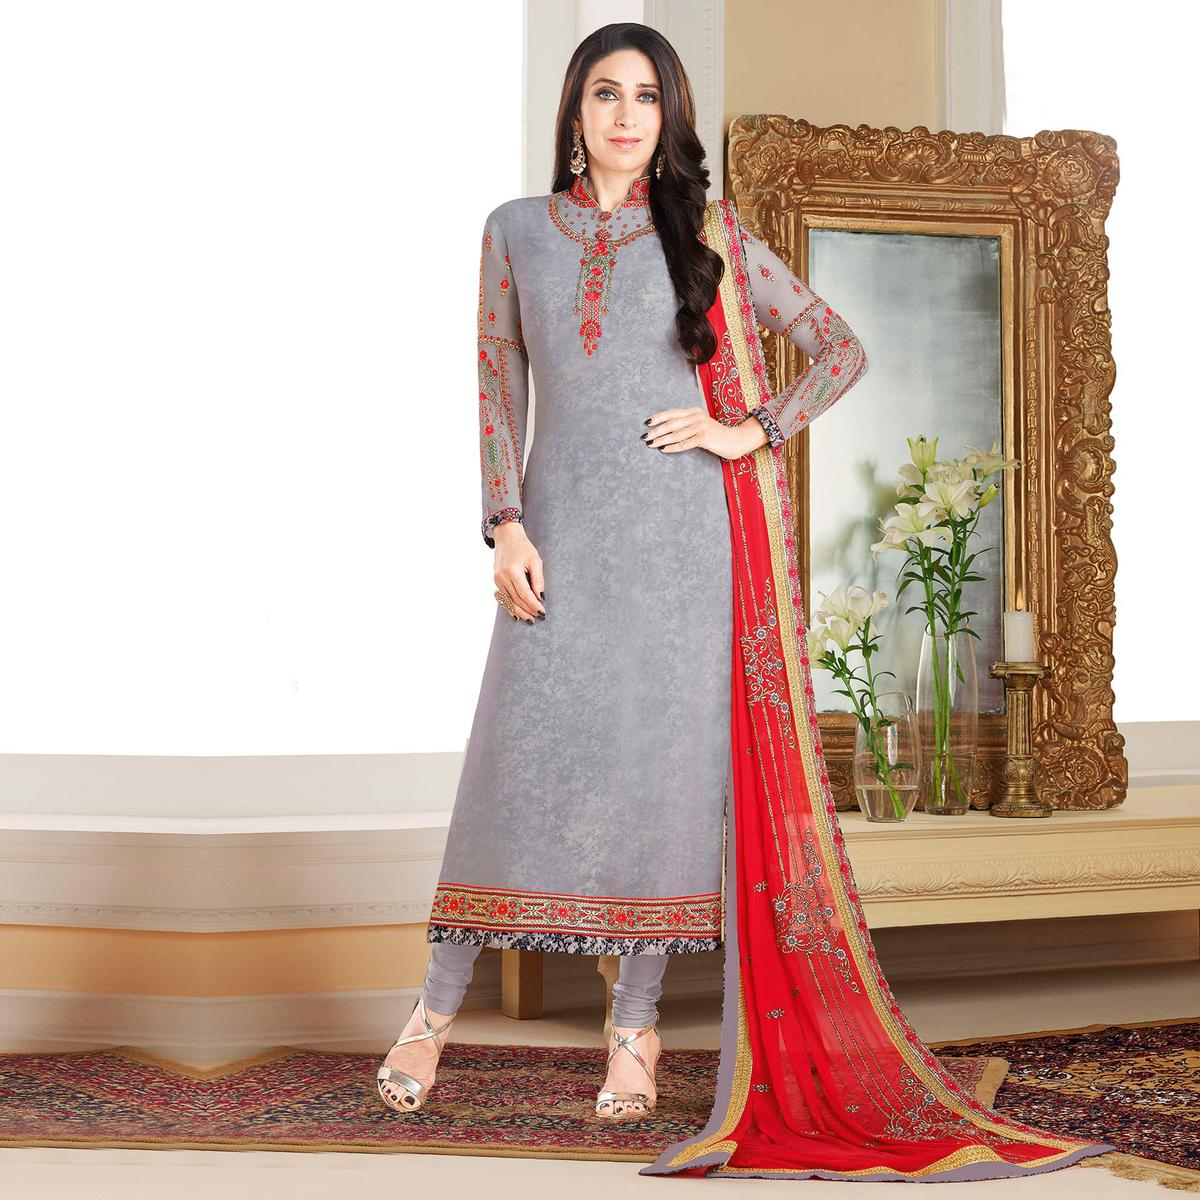 579403bb78 Buy Magnetic Grey Colored Designer Embroidered Partywear Georgette Salwar  Suit Online India, Best Prices, Reviews - Peachmode